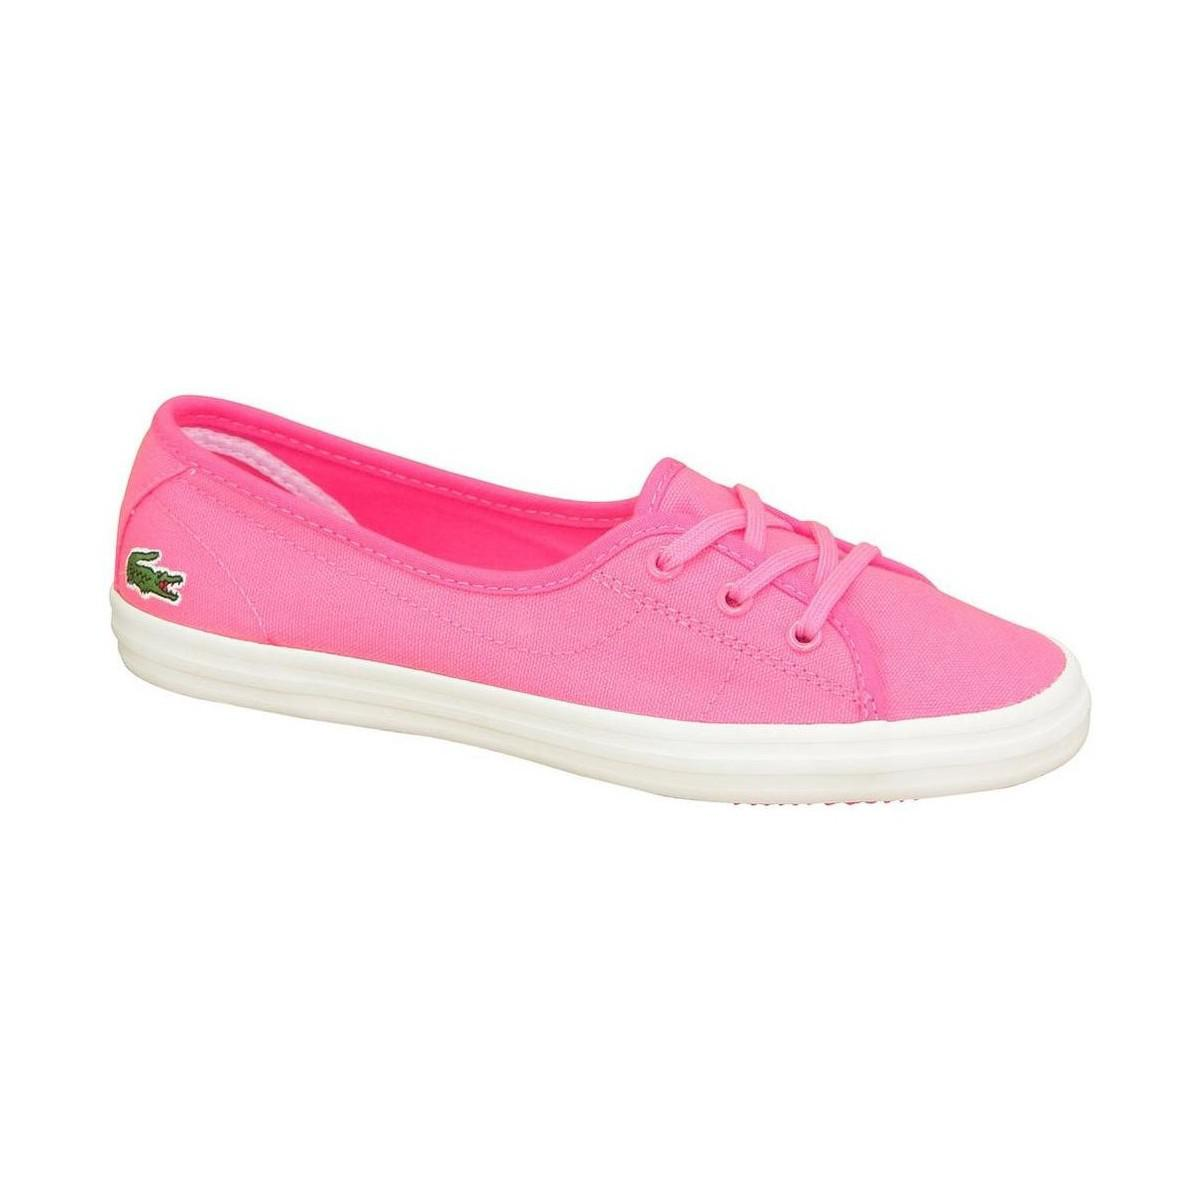 Lacoste Ziane Chunky Abb women's Shoes (Pumps / Ballerinas) in Cheap Footlocker Discount Manchester Great Sale Clearance Purchase In China Online qY30ivq